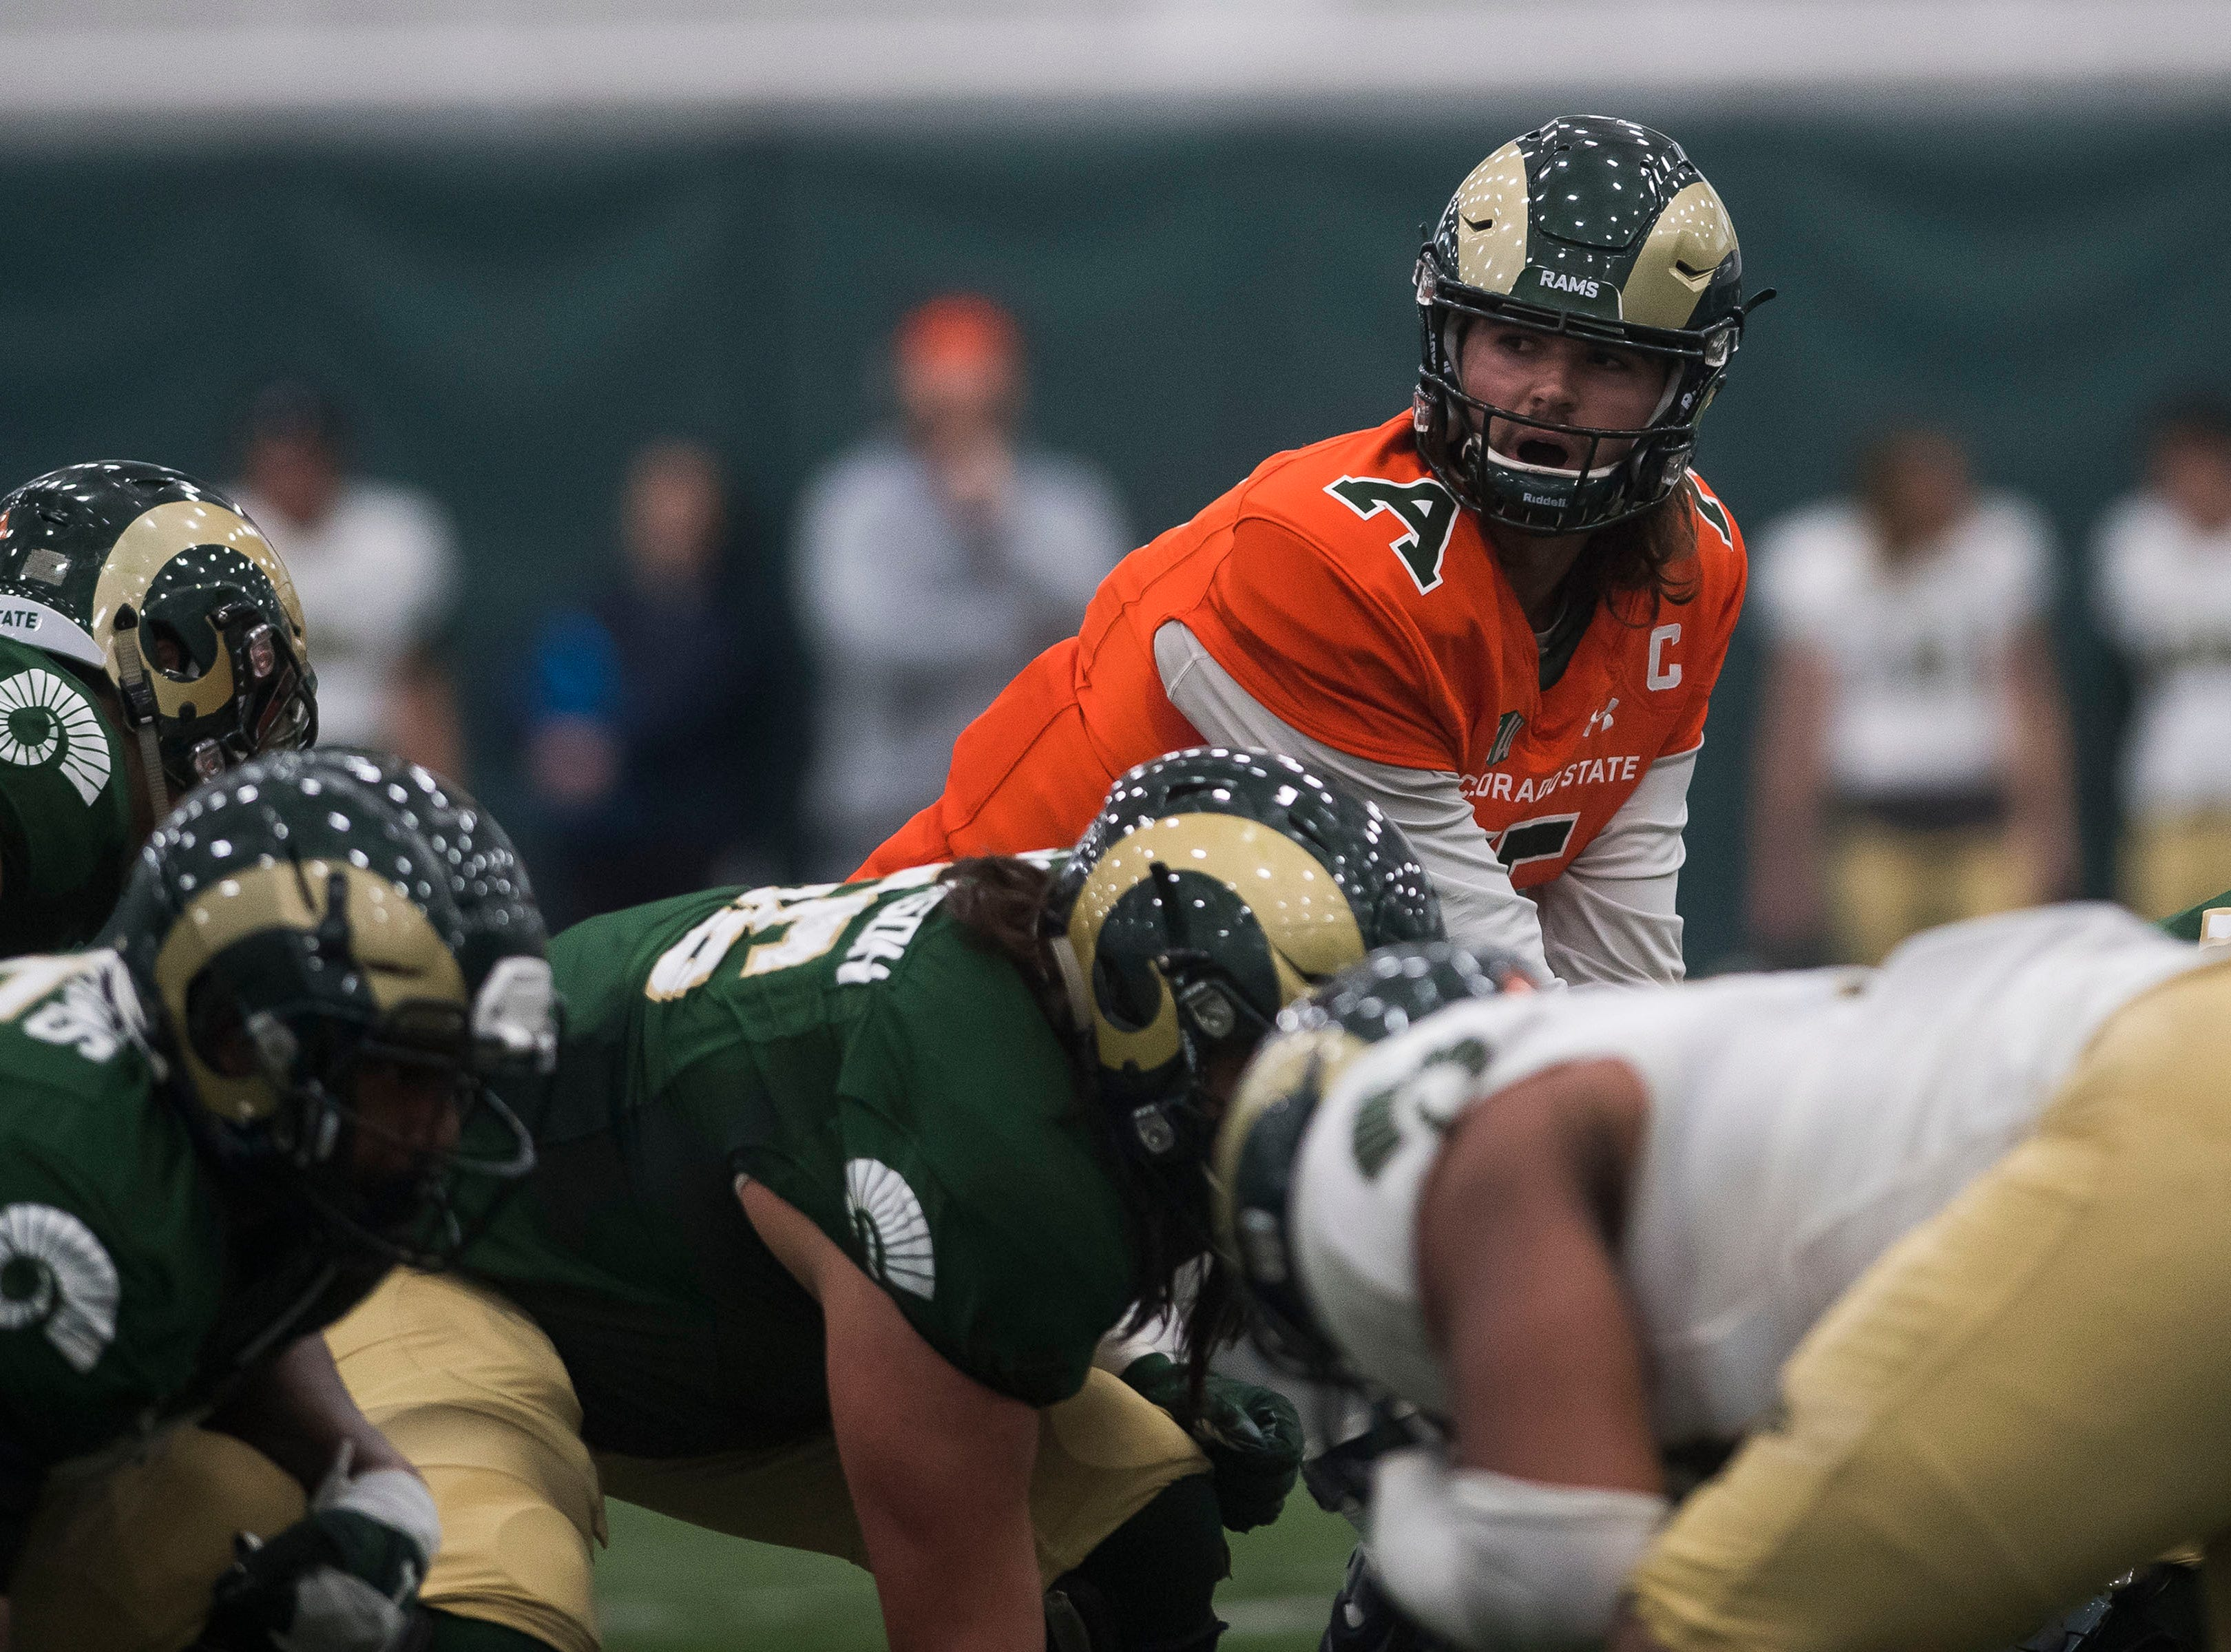 CSU junior quarterback Colin Hill (15) makes a call to his offense during CSU's Spring game on Thursday, March 14, 2019, at their indoor practice facility in Fort Collins, Colo.